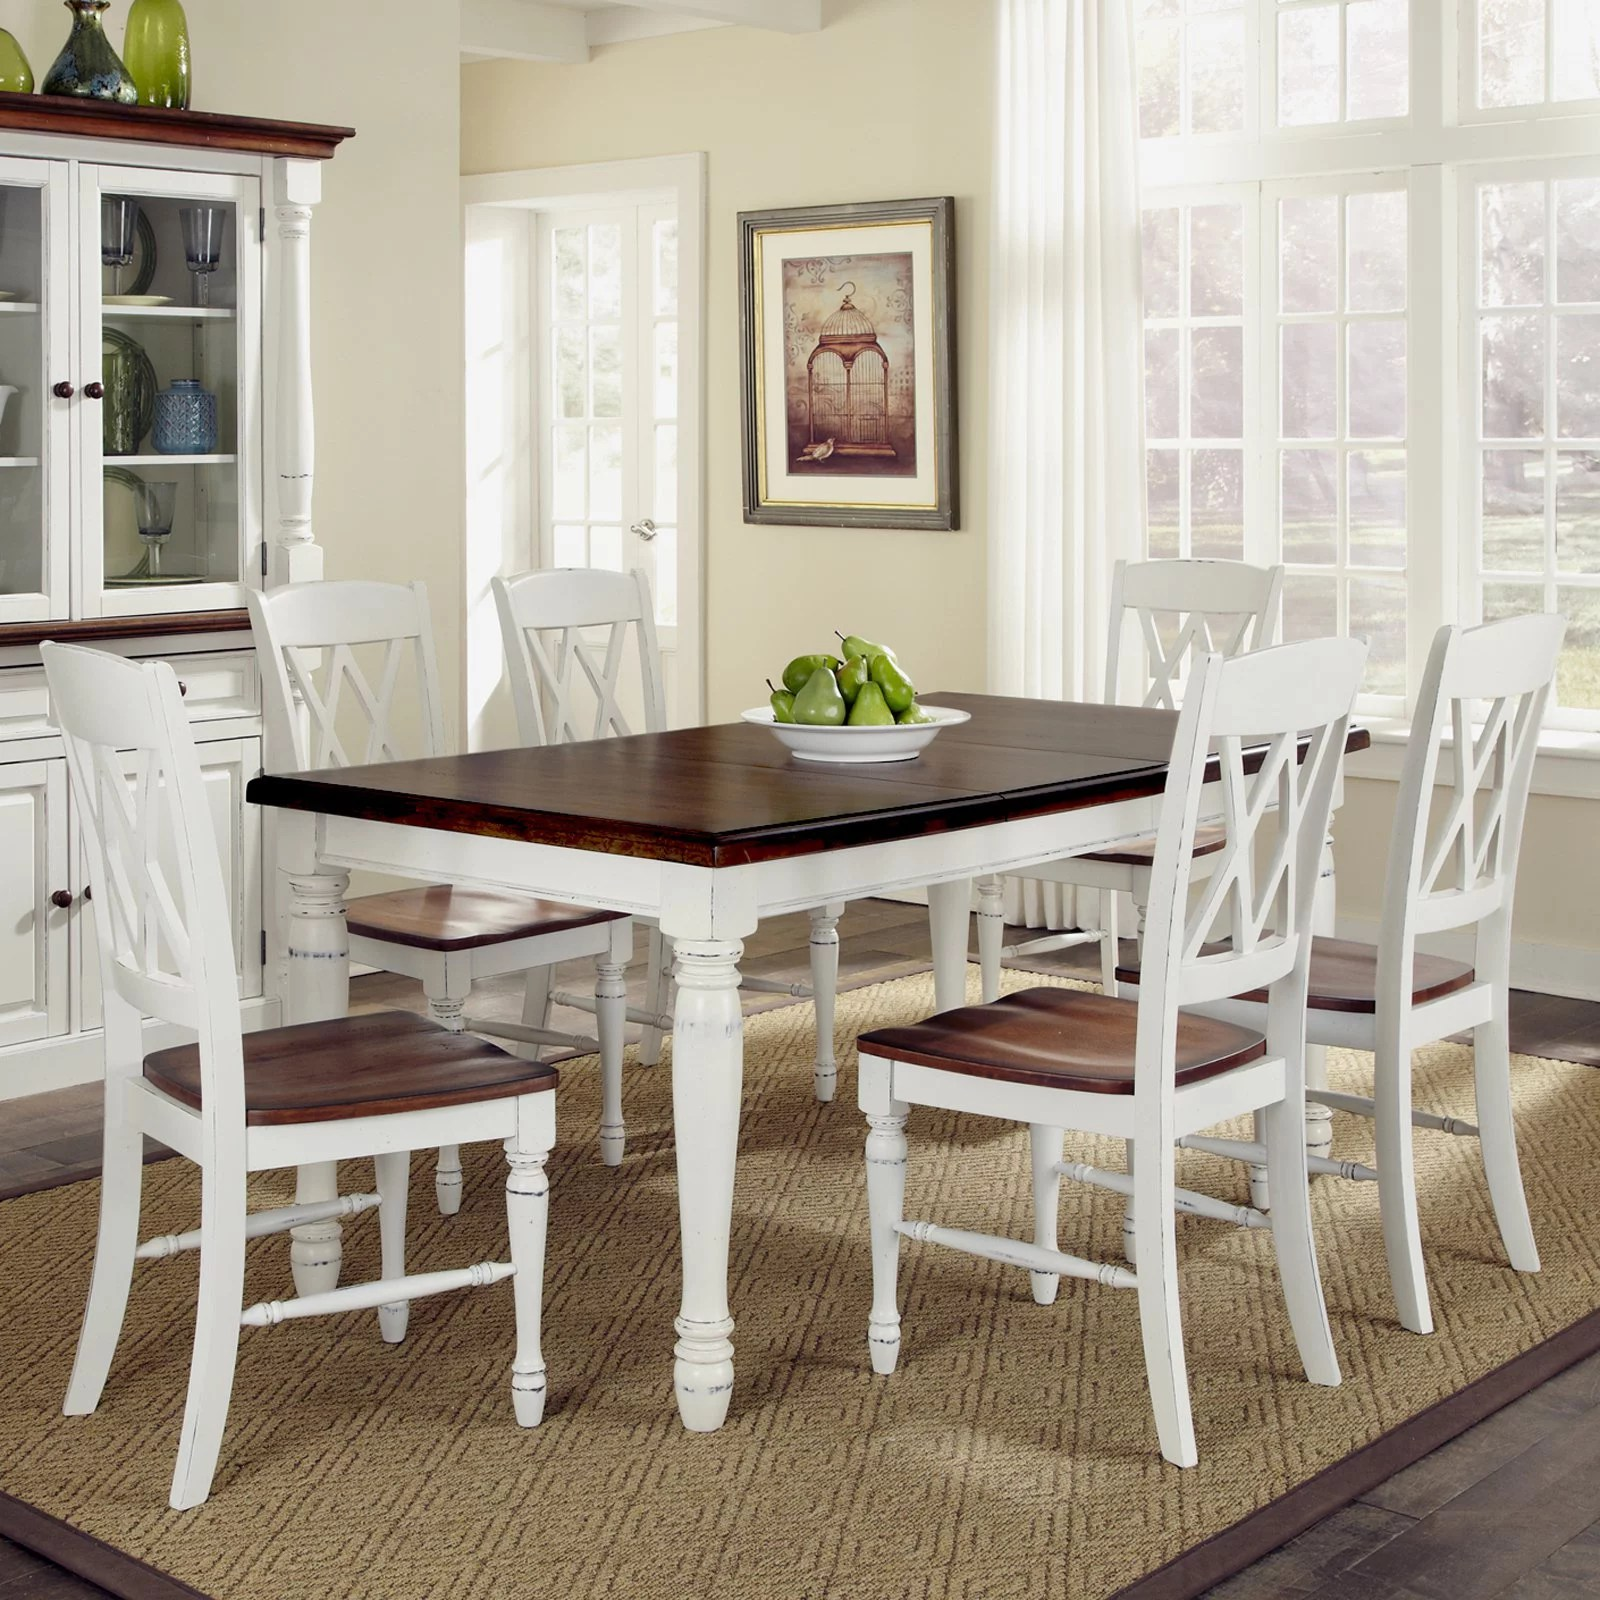 Styles Of Chairs Home Styles Monarch Rectangular Dining Table And 6 Double X Back Chairs Multiple Finishes